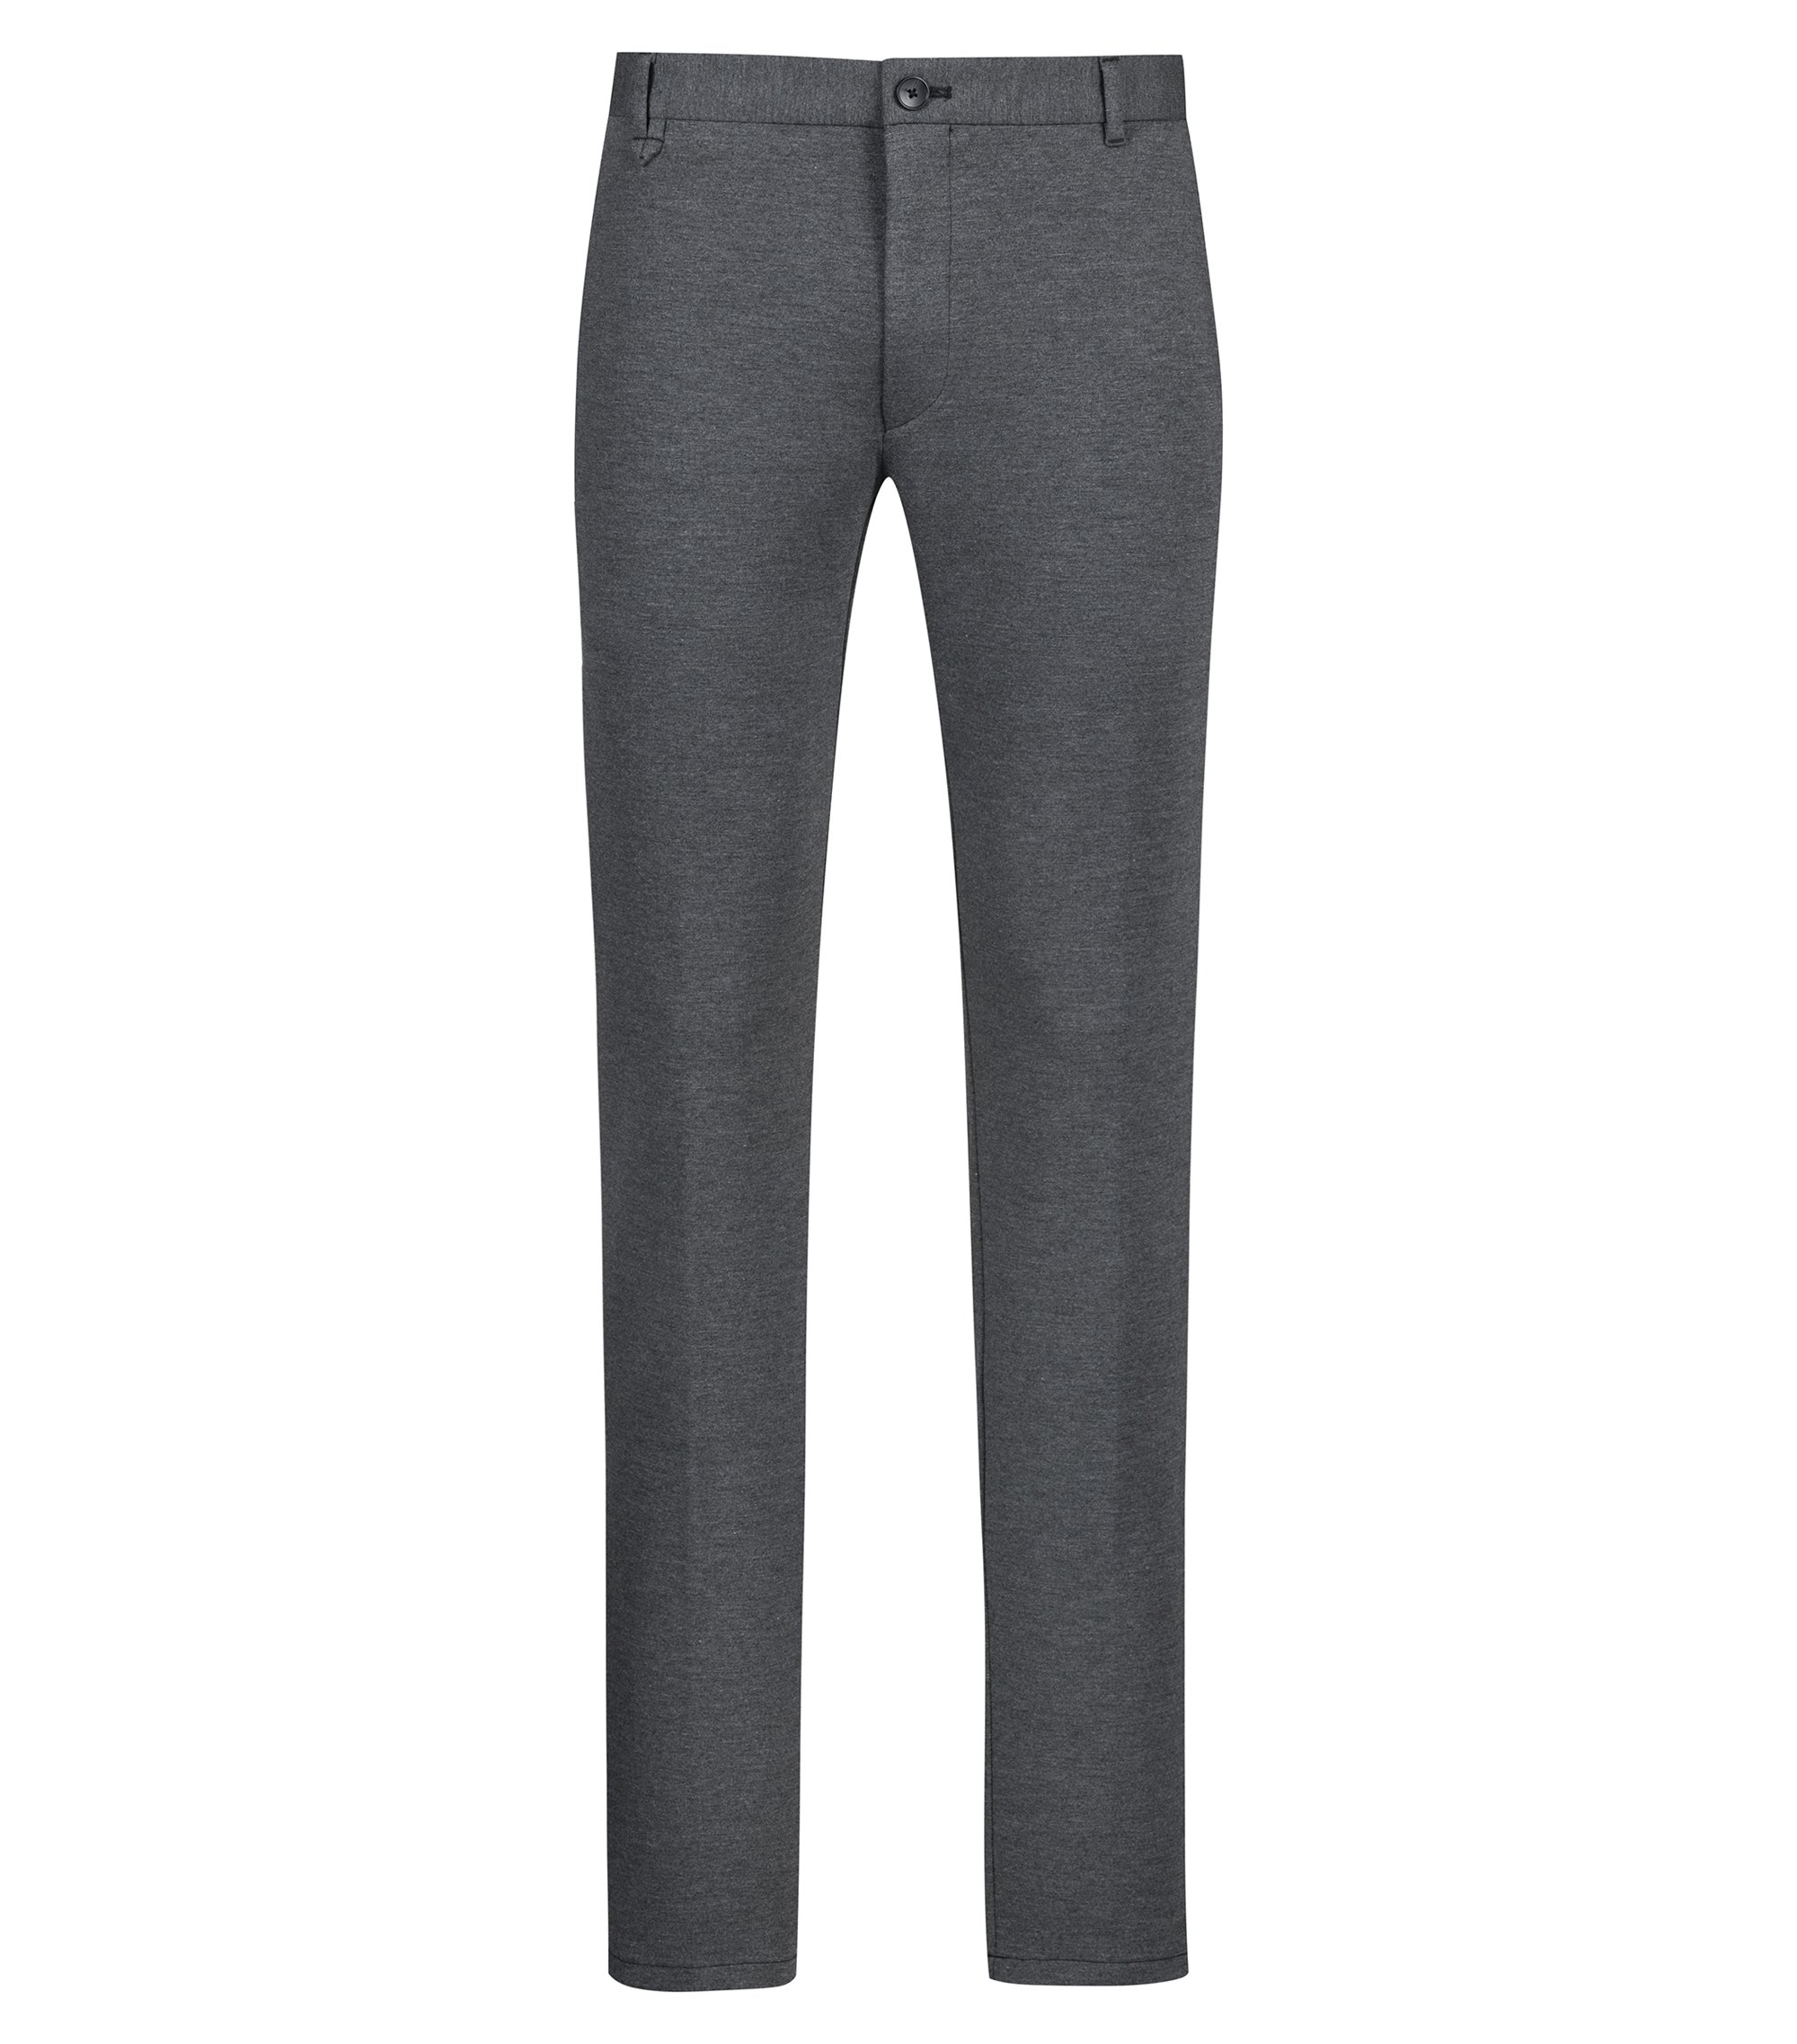 Pantalon Extra Slim Fit en jersey stretch, Gris